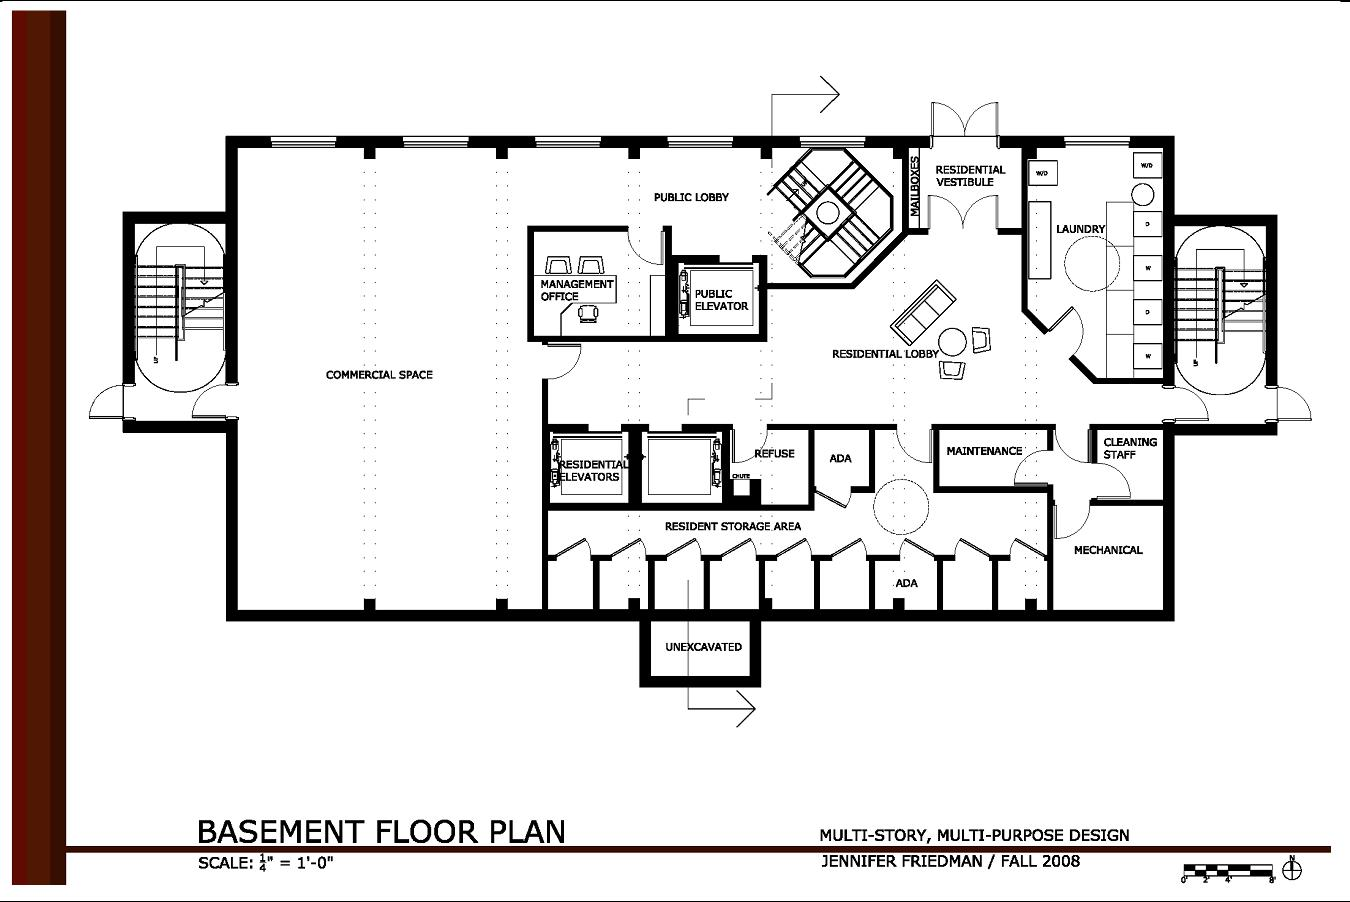 Marvelous 2 story commercial office building plans for Commercial building plans